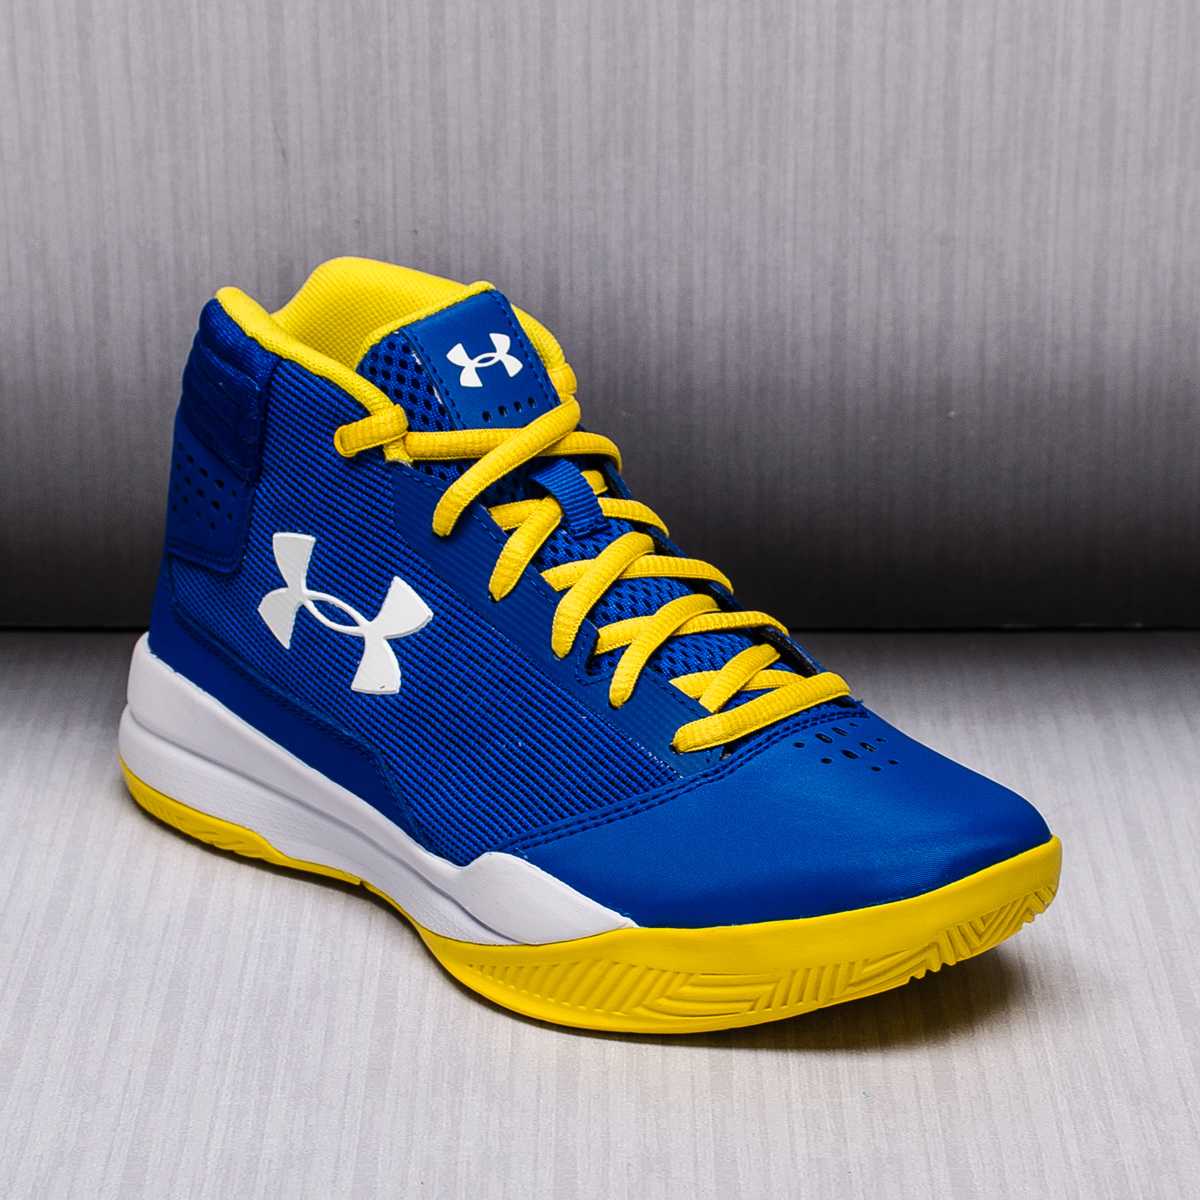 Nba Shoes For Kids